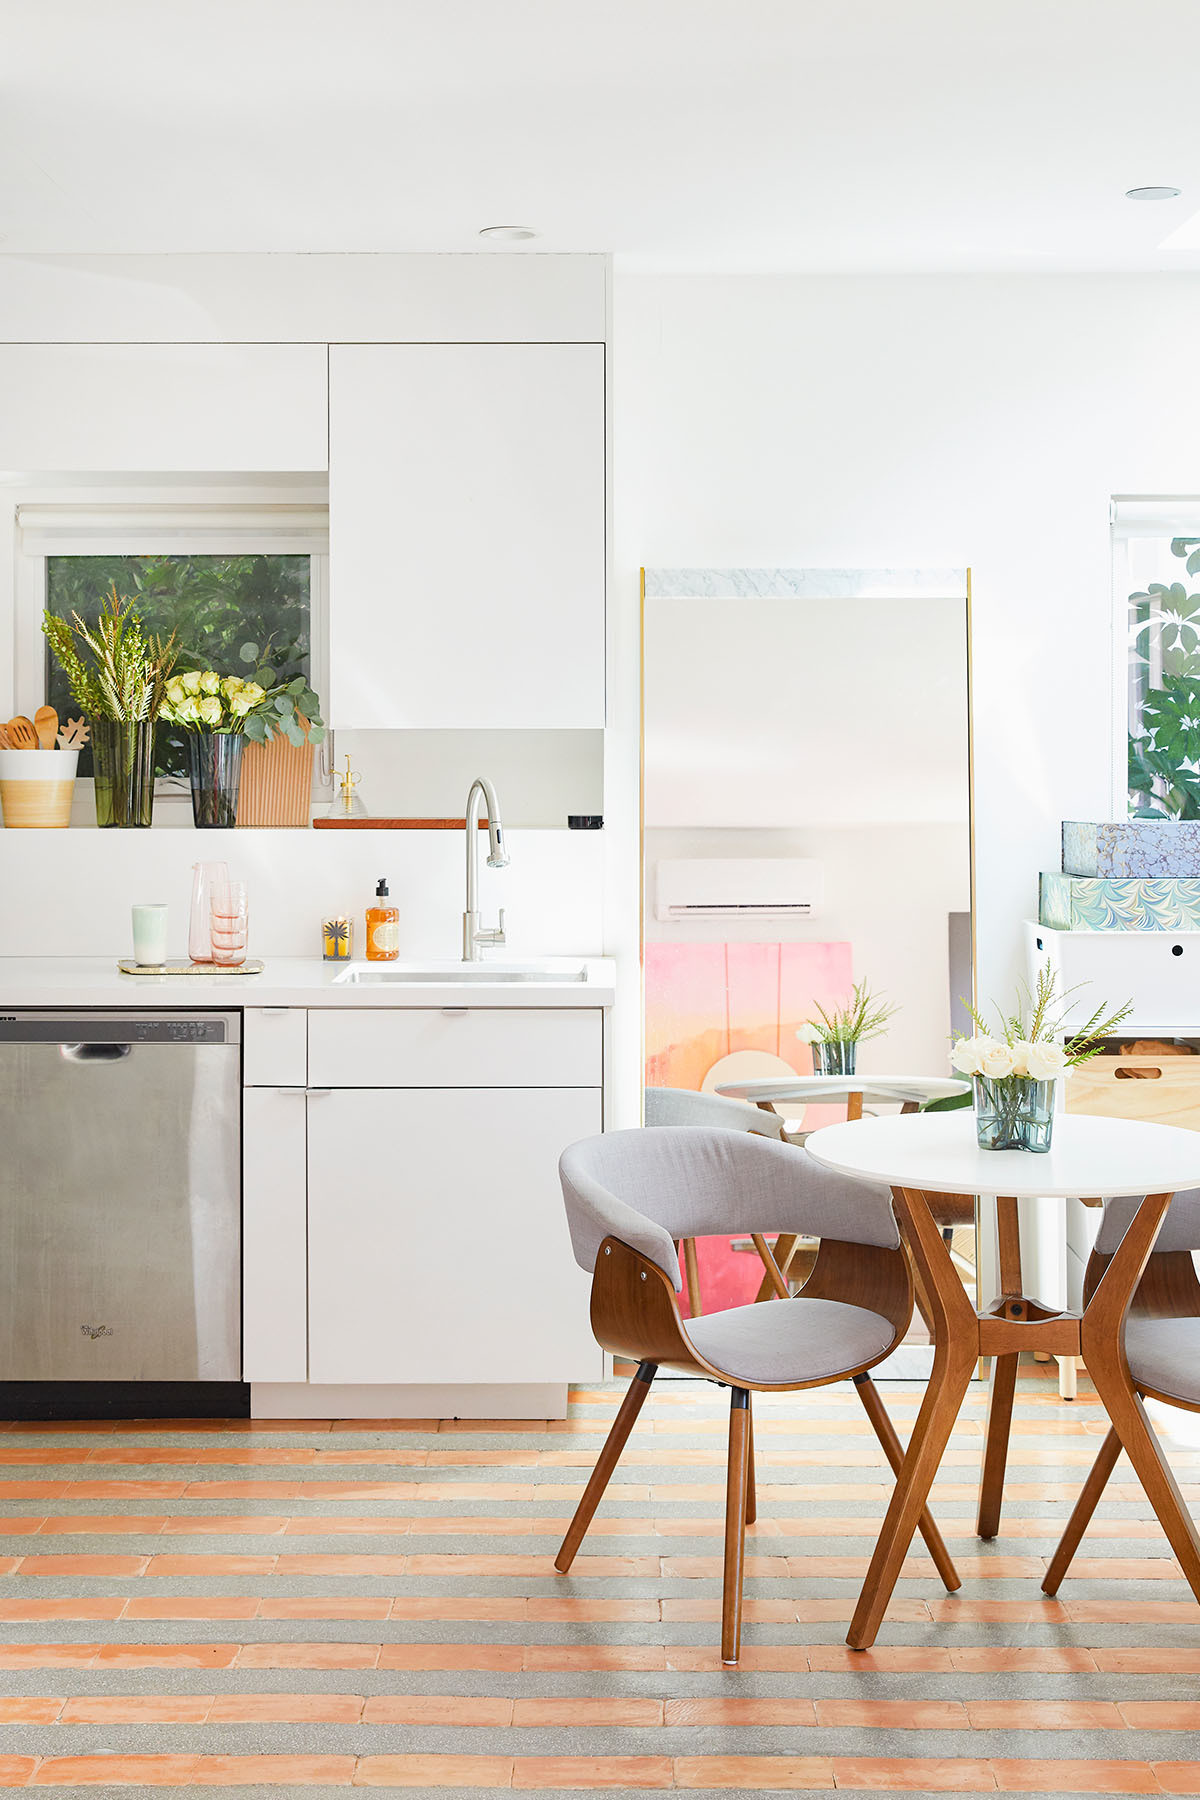 The couple opt for Danish-inspired furniture, and a smaller breakfast nook over a full-scale dining table. Vintage Dining Table | Vintage Dining Chairs | IKEA Shelves | Amana, Whirlpool Appliances | Alvar Aalto for Iittala Vase.